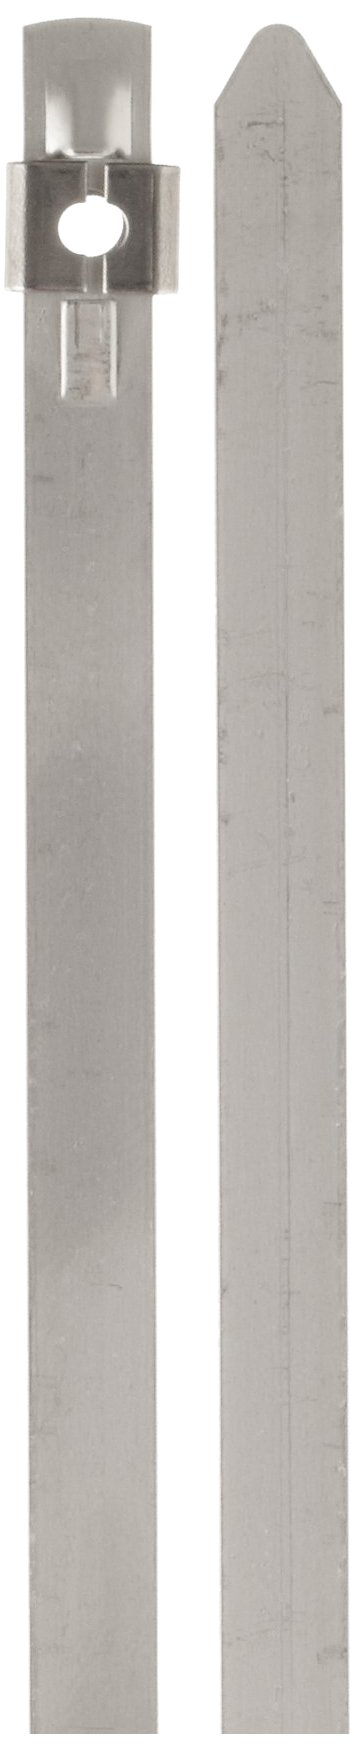 BAND-IT AS2129 Tie-Lok 304 Stainless Steel Cable Tie, 1/4'' Width, 16.5'' Length, 4'' Maximum Diameter, 100 per Bag by Band-It